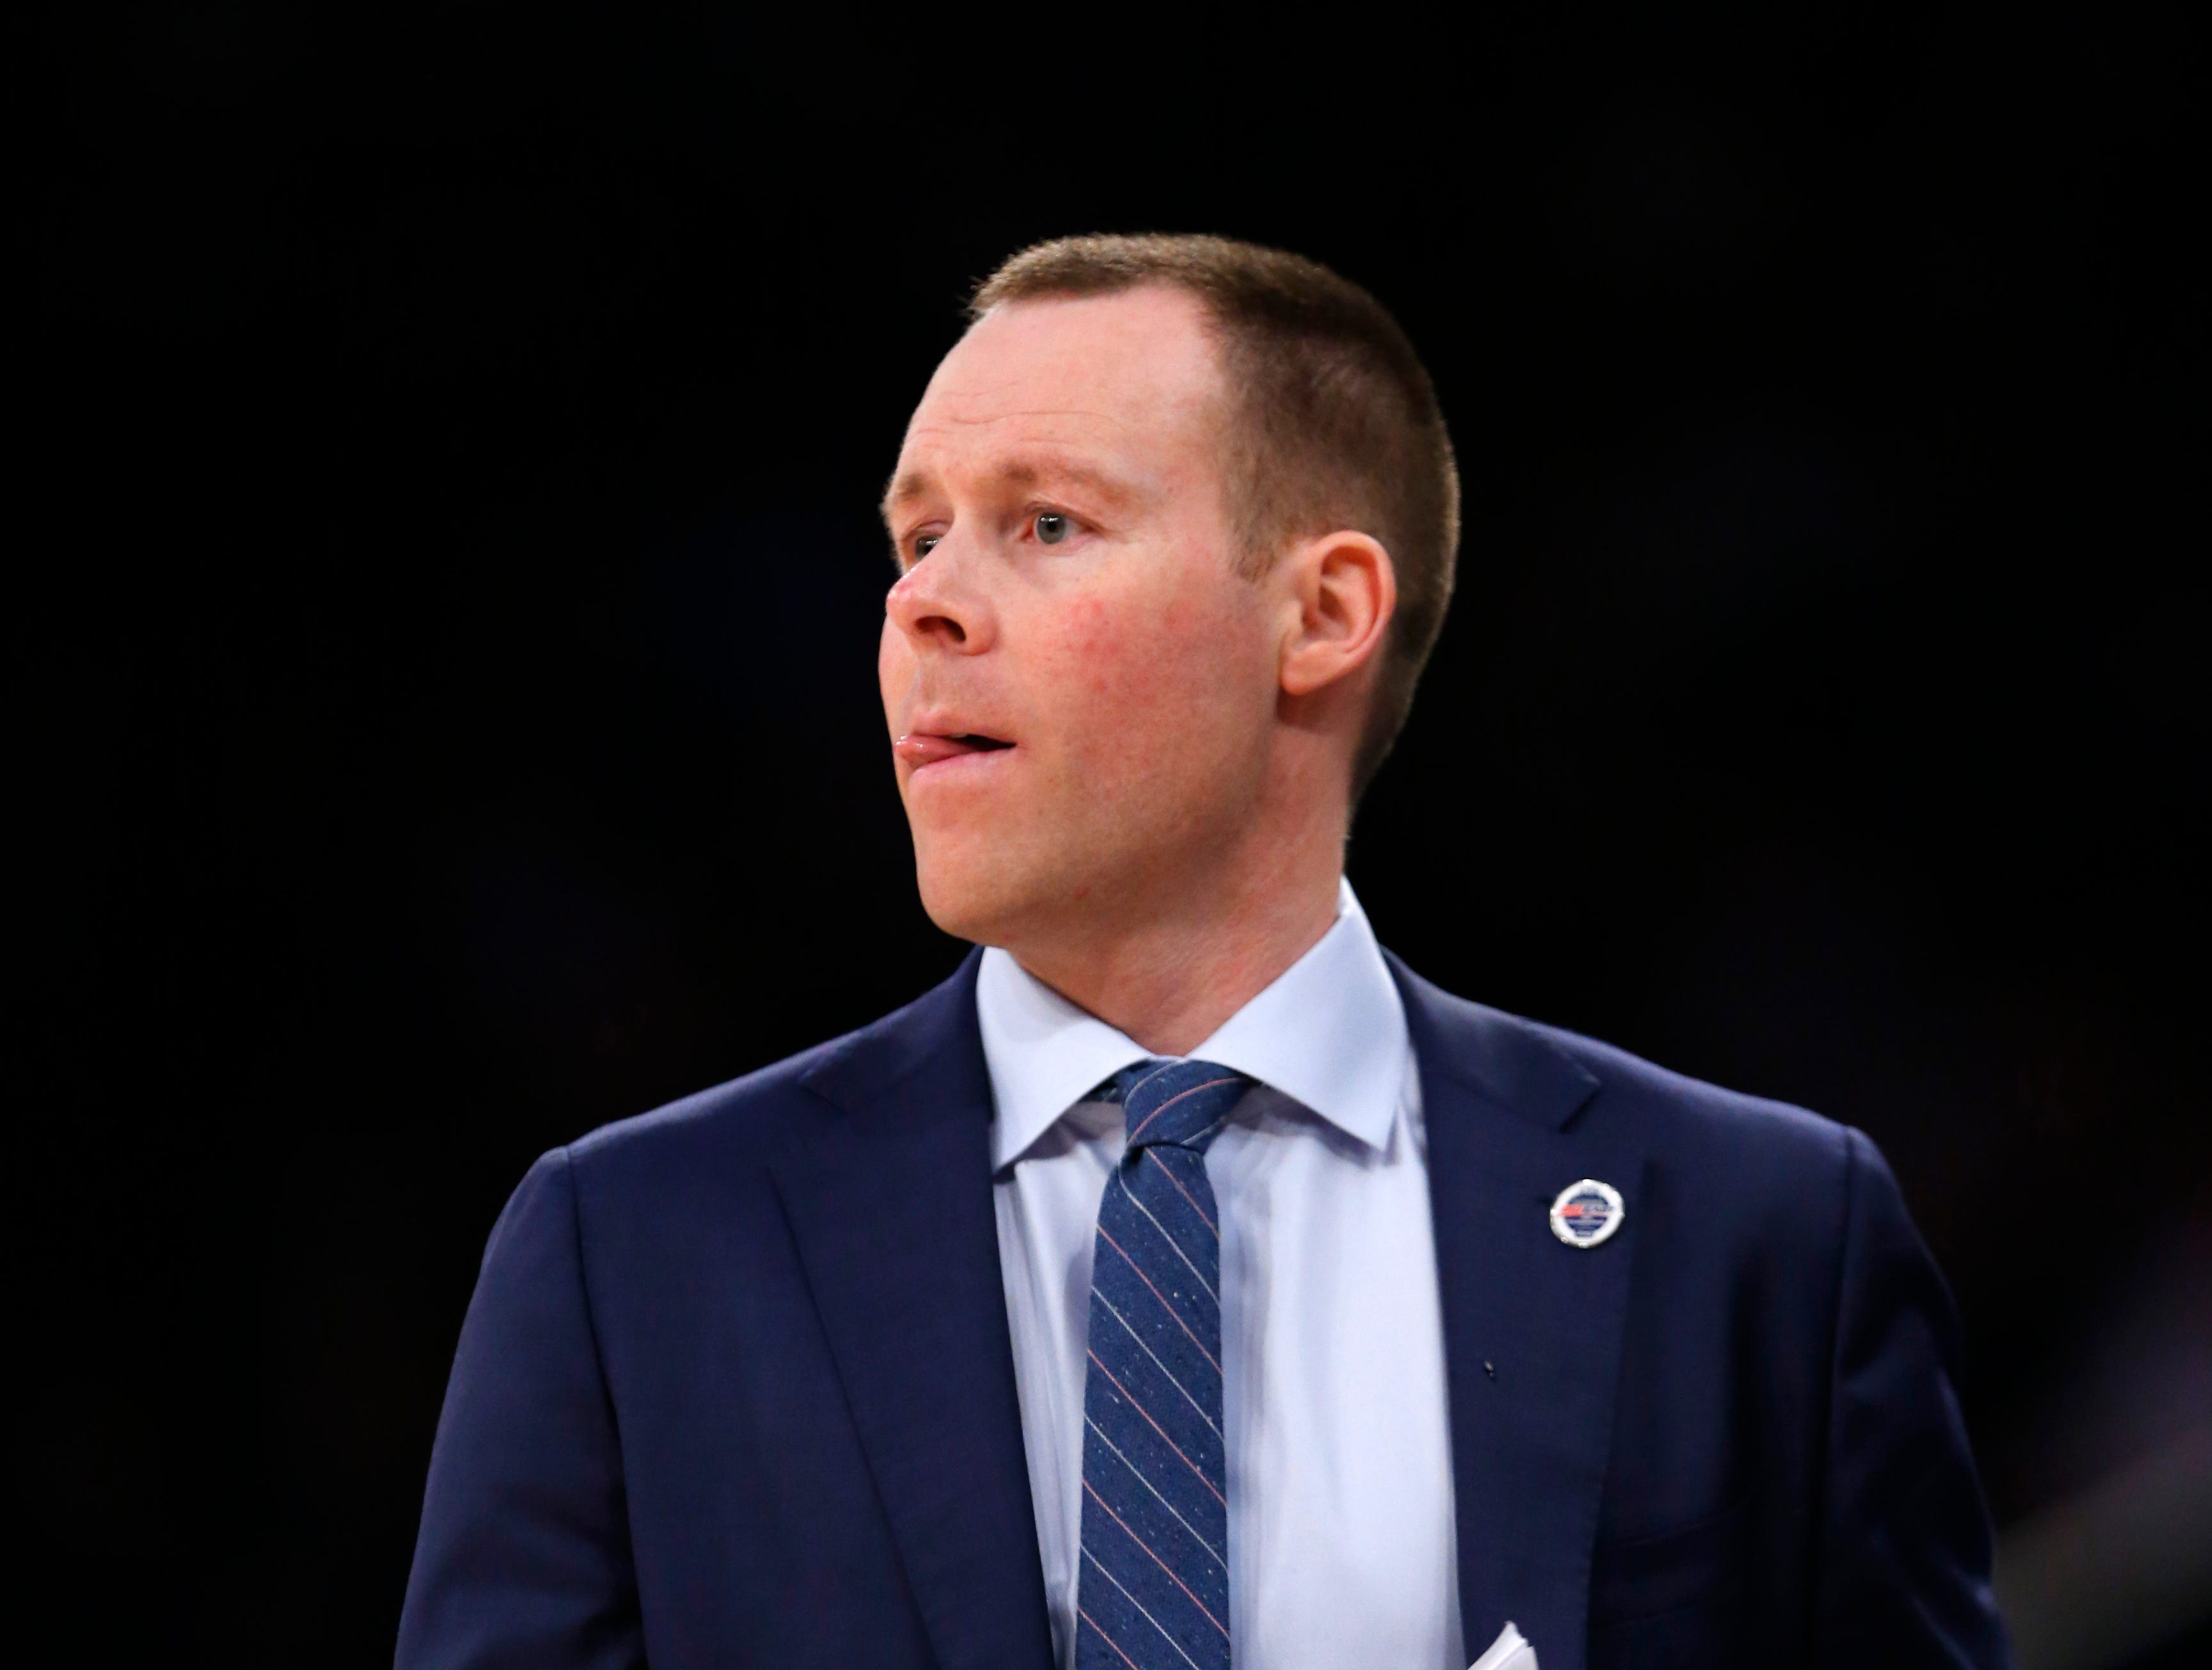 Xavier Musketeers head coach Travis Steele coaches against the Creighton Bluejays during the second half of a quarterfinal game of the Big East conference tournament at Madison Square Garden.